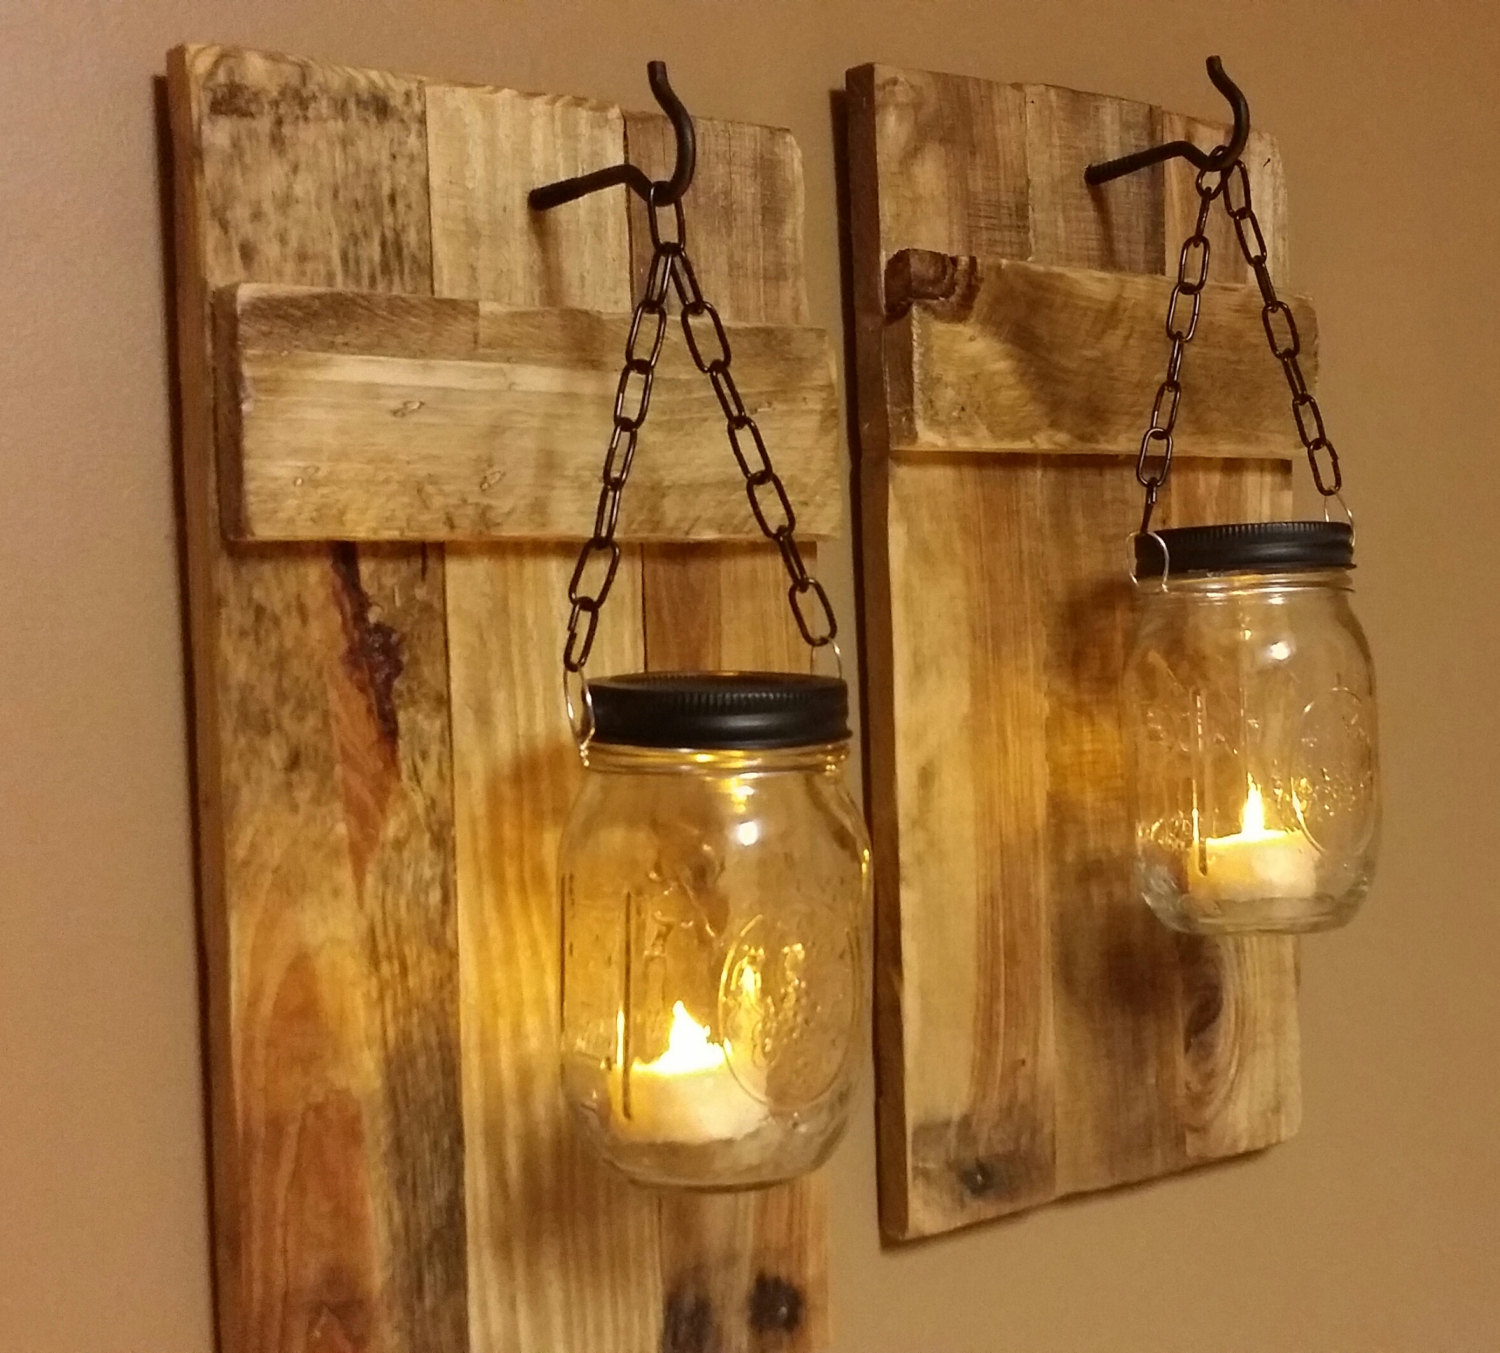 Diy Wall Sconces For Candles : DIY Mason Jar Sconce Making Tutorial - Mason Jar Crafts